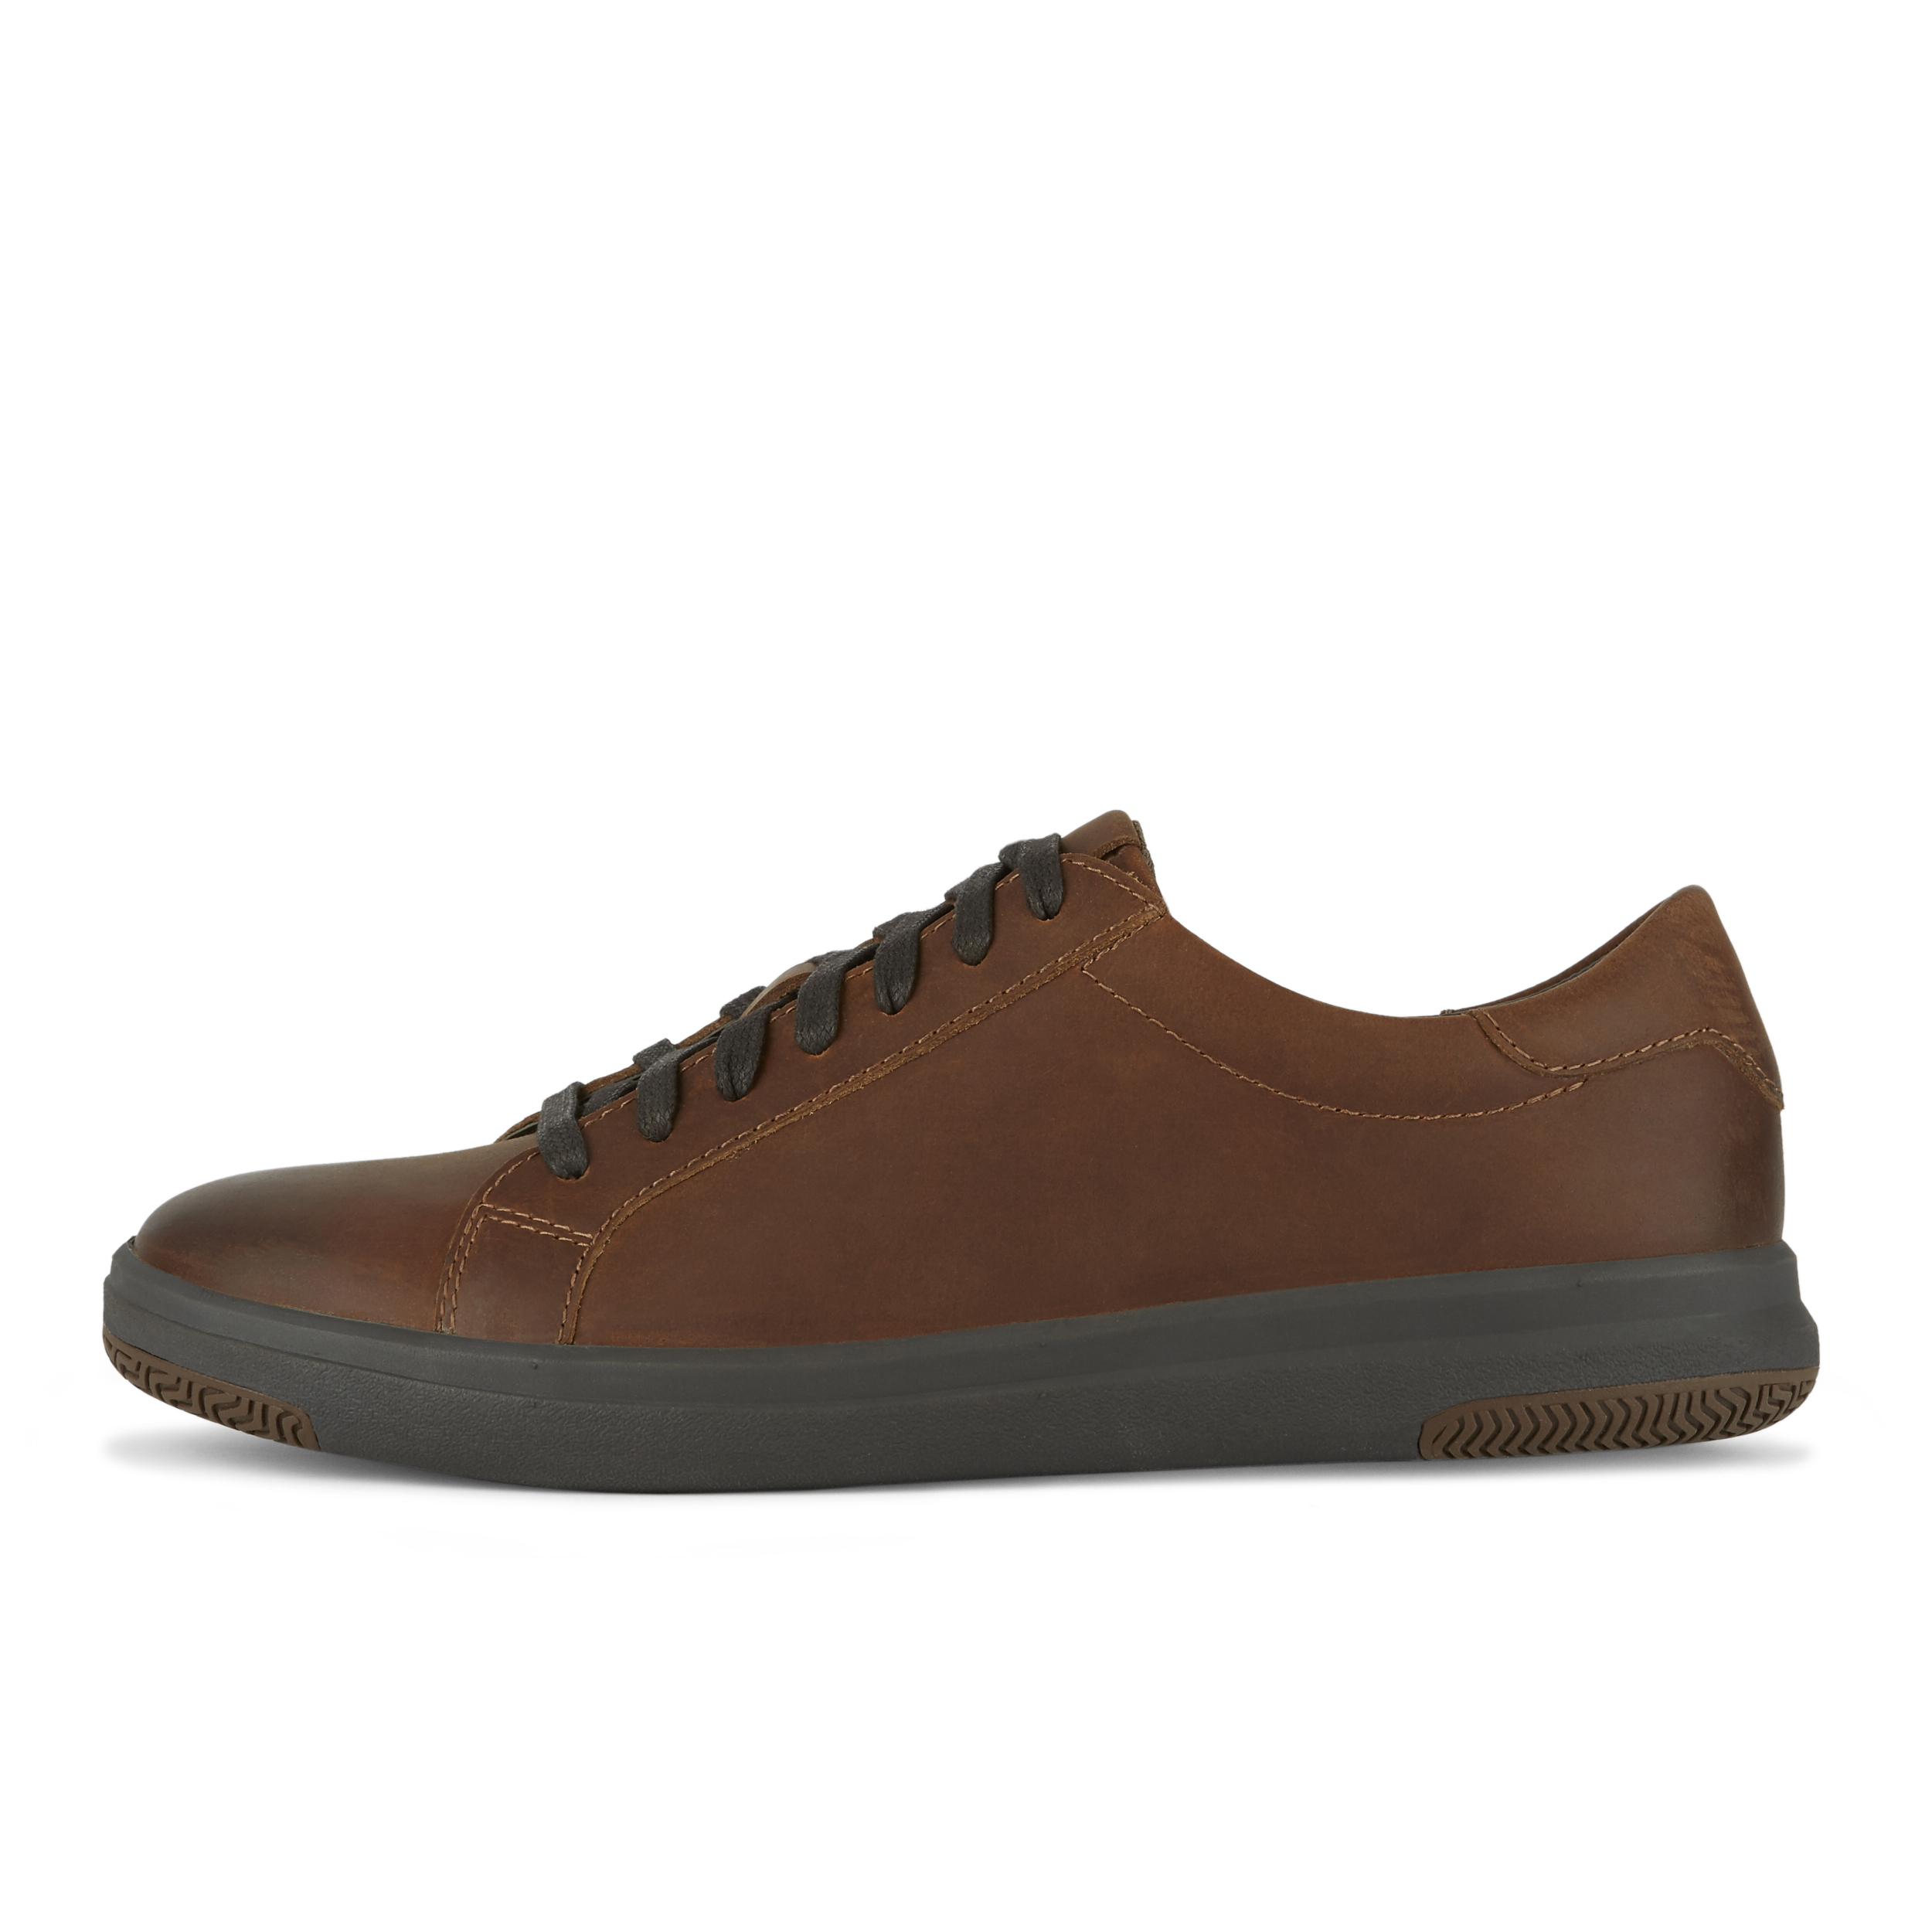 Dockers-Mens-Gilmore-Genuine-Leather-Casual-Fashion-Lace-up-Sneaker-Shoe thumbnail 23